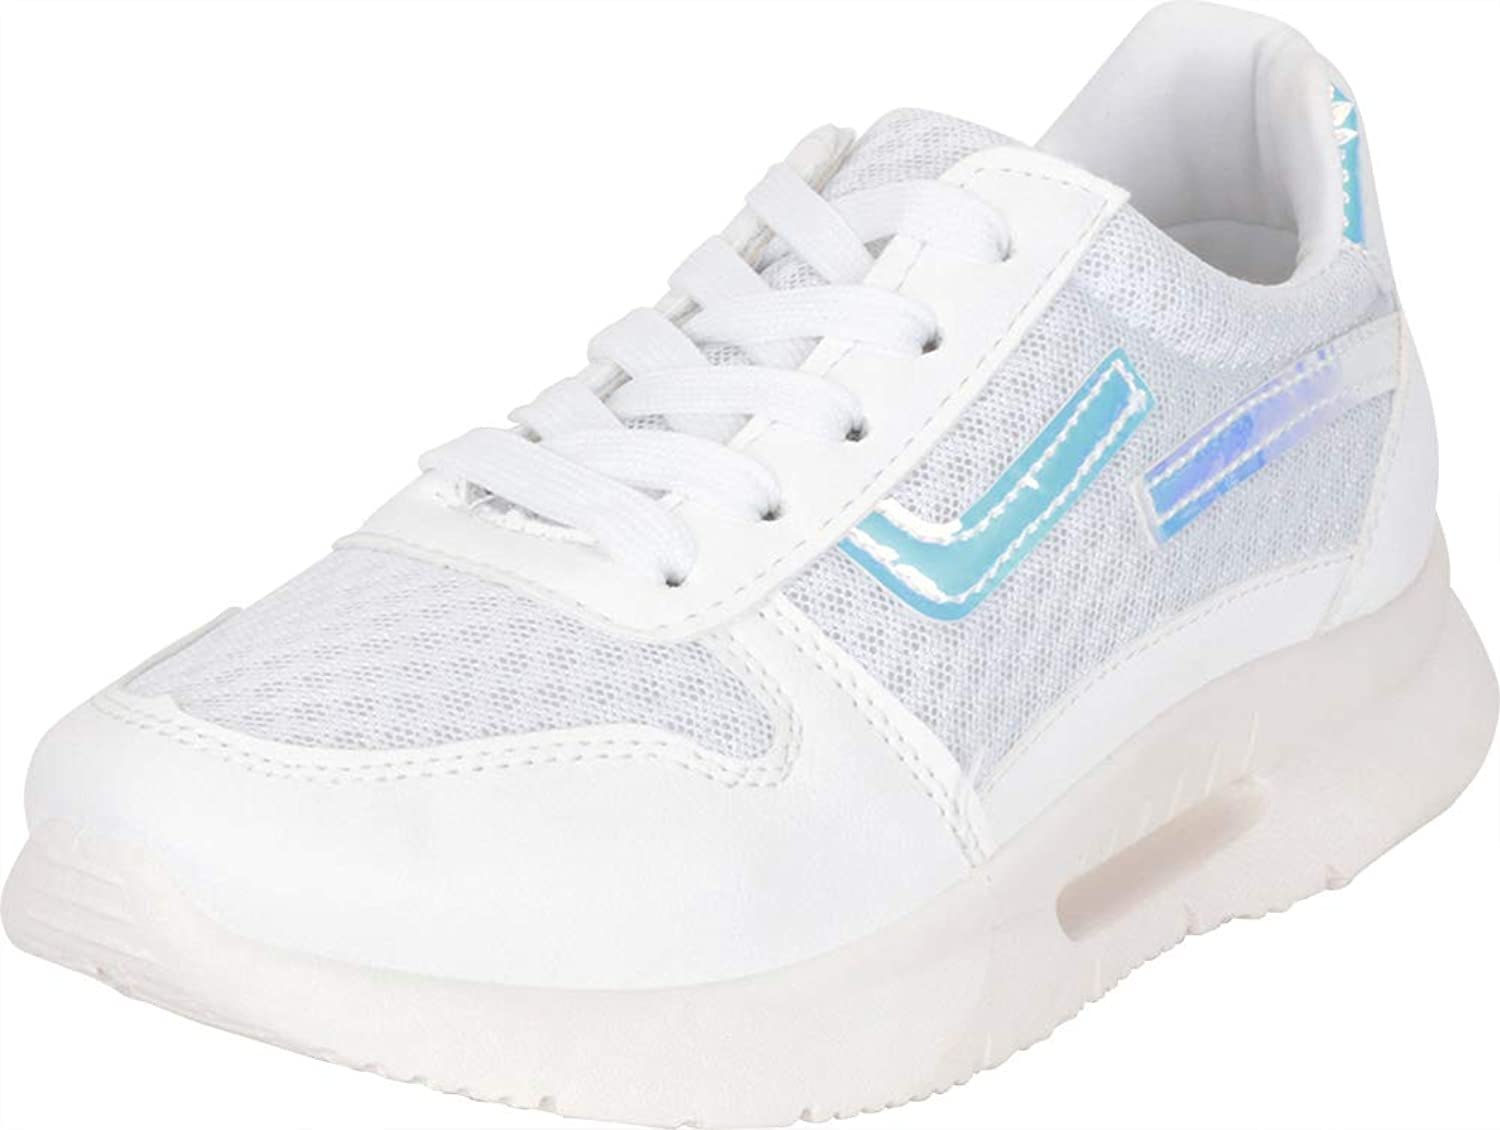 Cambridge Select Women's Low Top 90s Ugly Dad Lace-Up Chunky Platform Fashion Sneaker